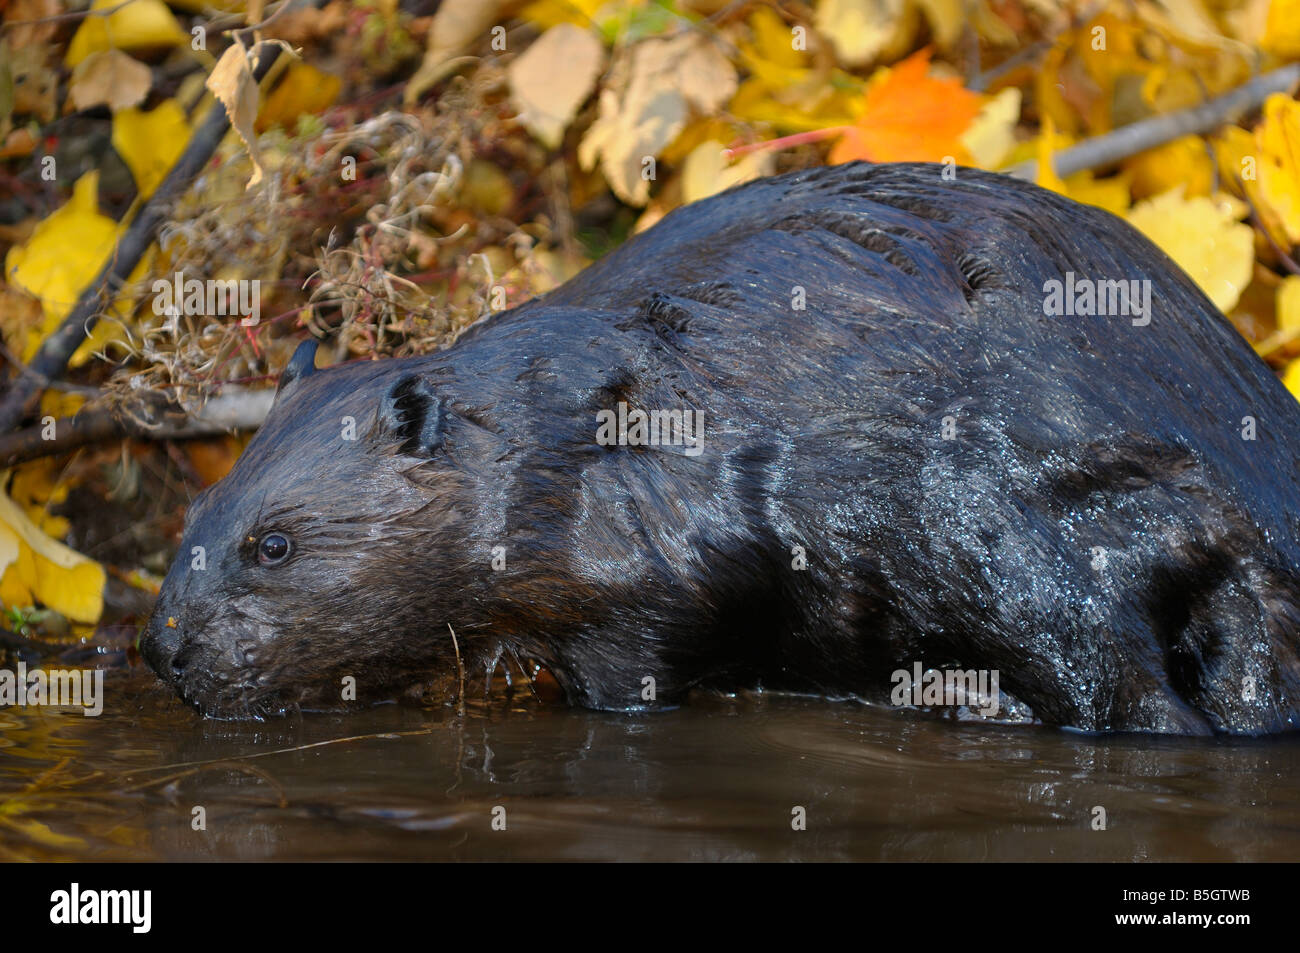 Wet Canadian Beaver standing at the edge of a stream with Fall color leaves Castor Canadensis Minnesota USA - Stock Image